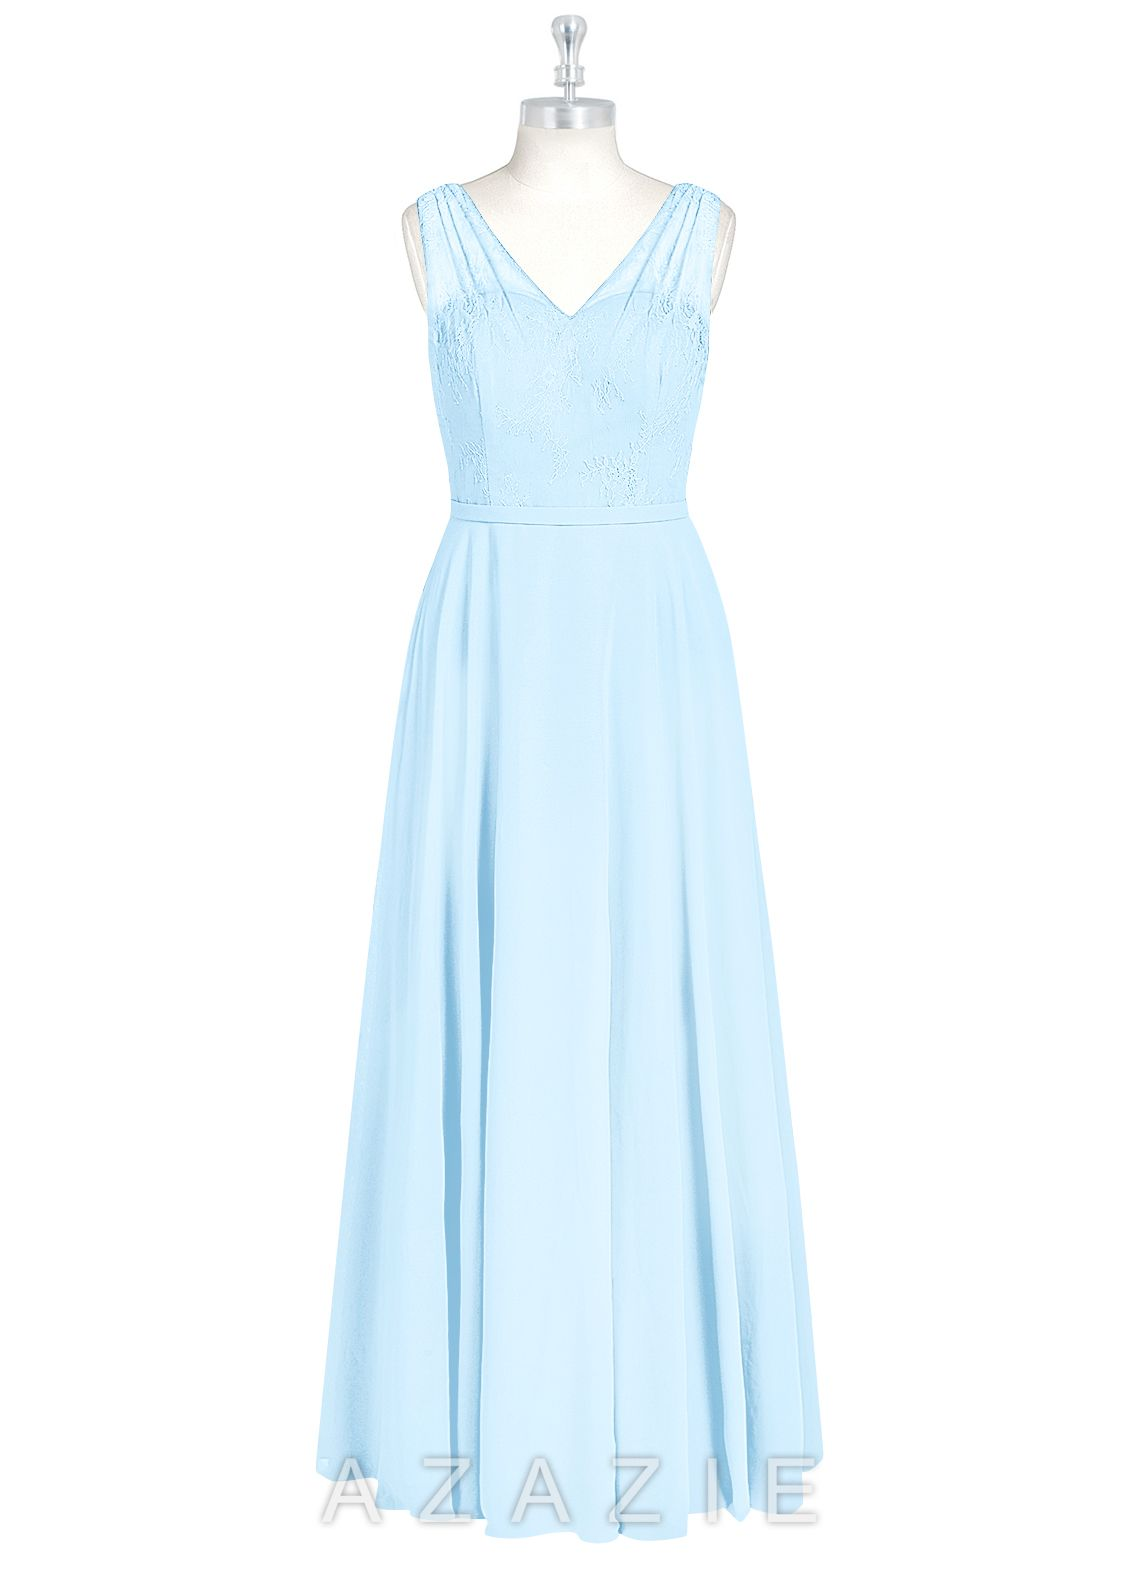 Shop azazie bridesmaid dress eileen in chiffon find the perfect